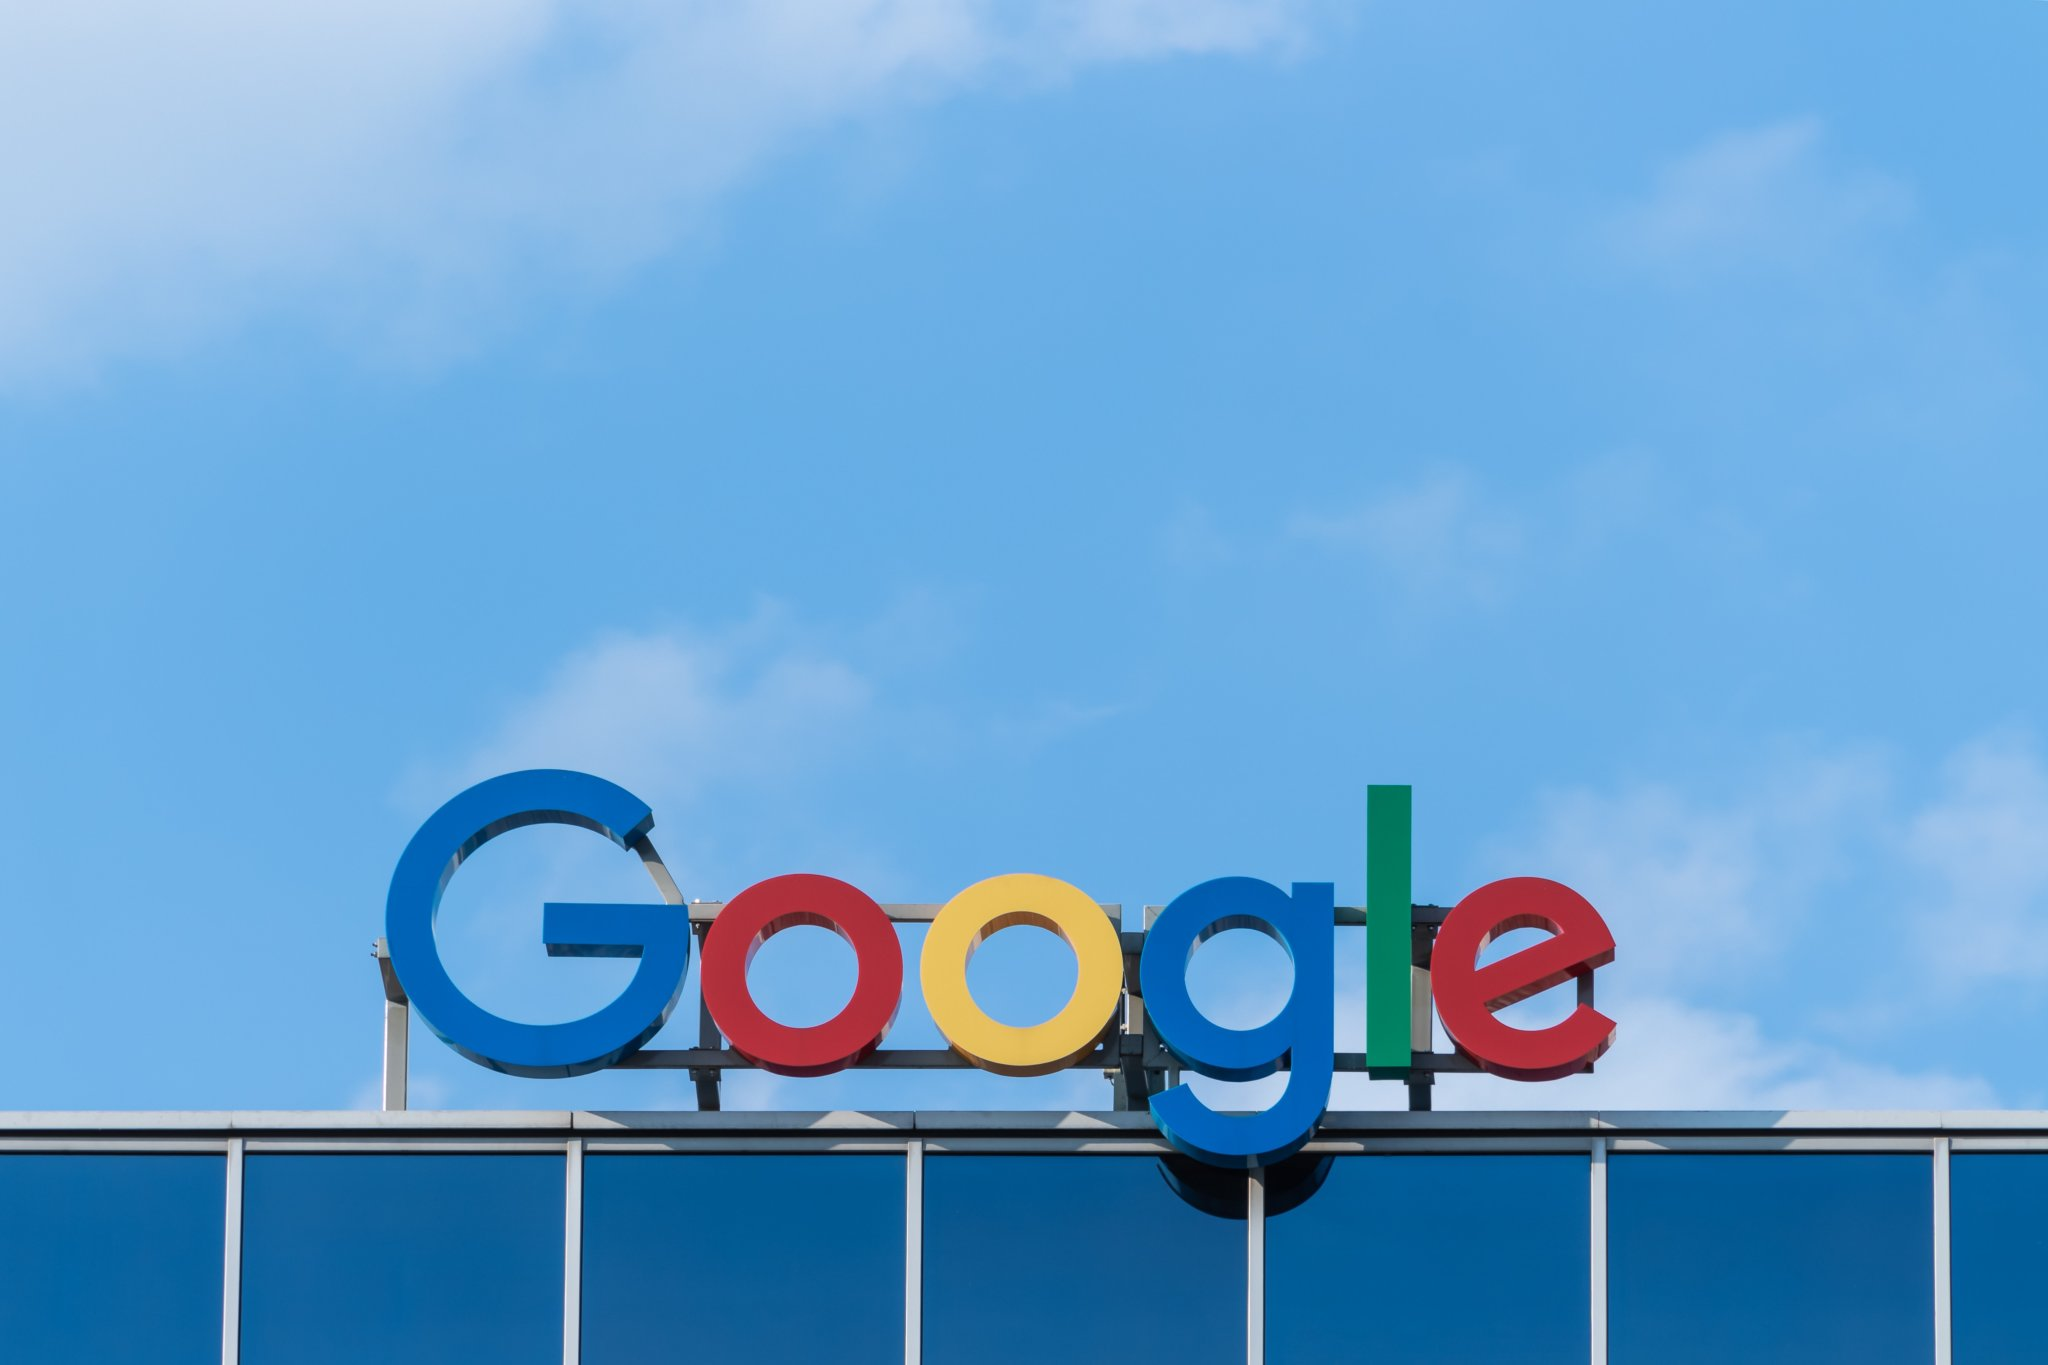 Official Google Partners, Pixel Kicks PPC Manchester